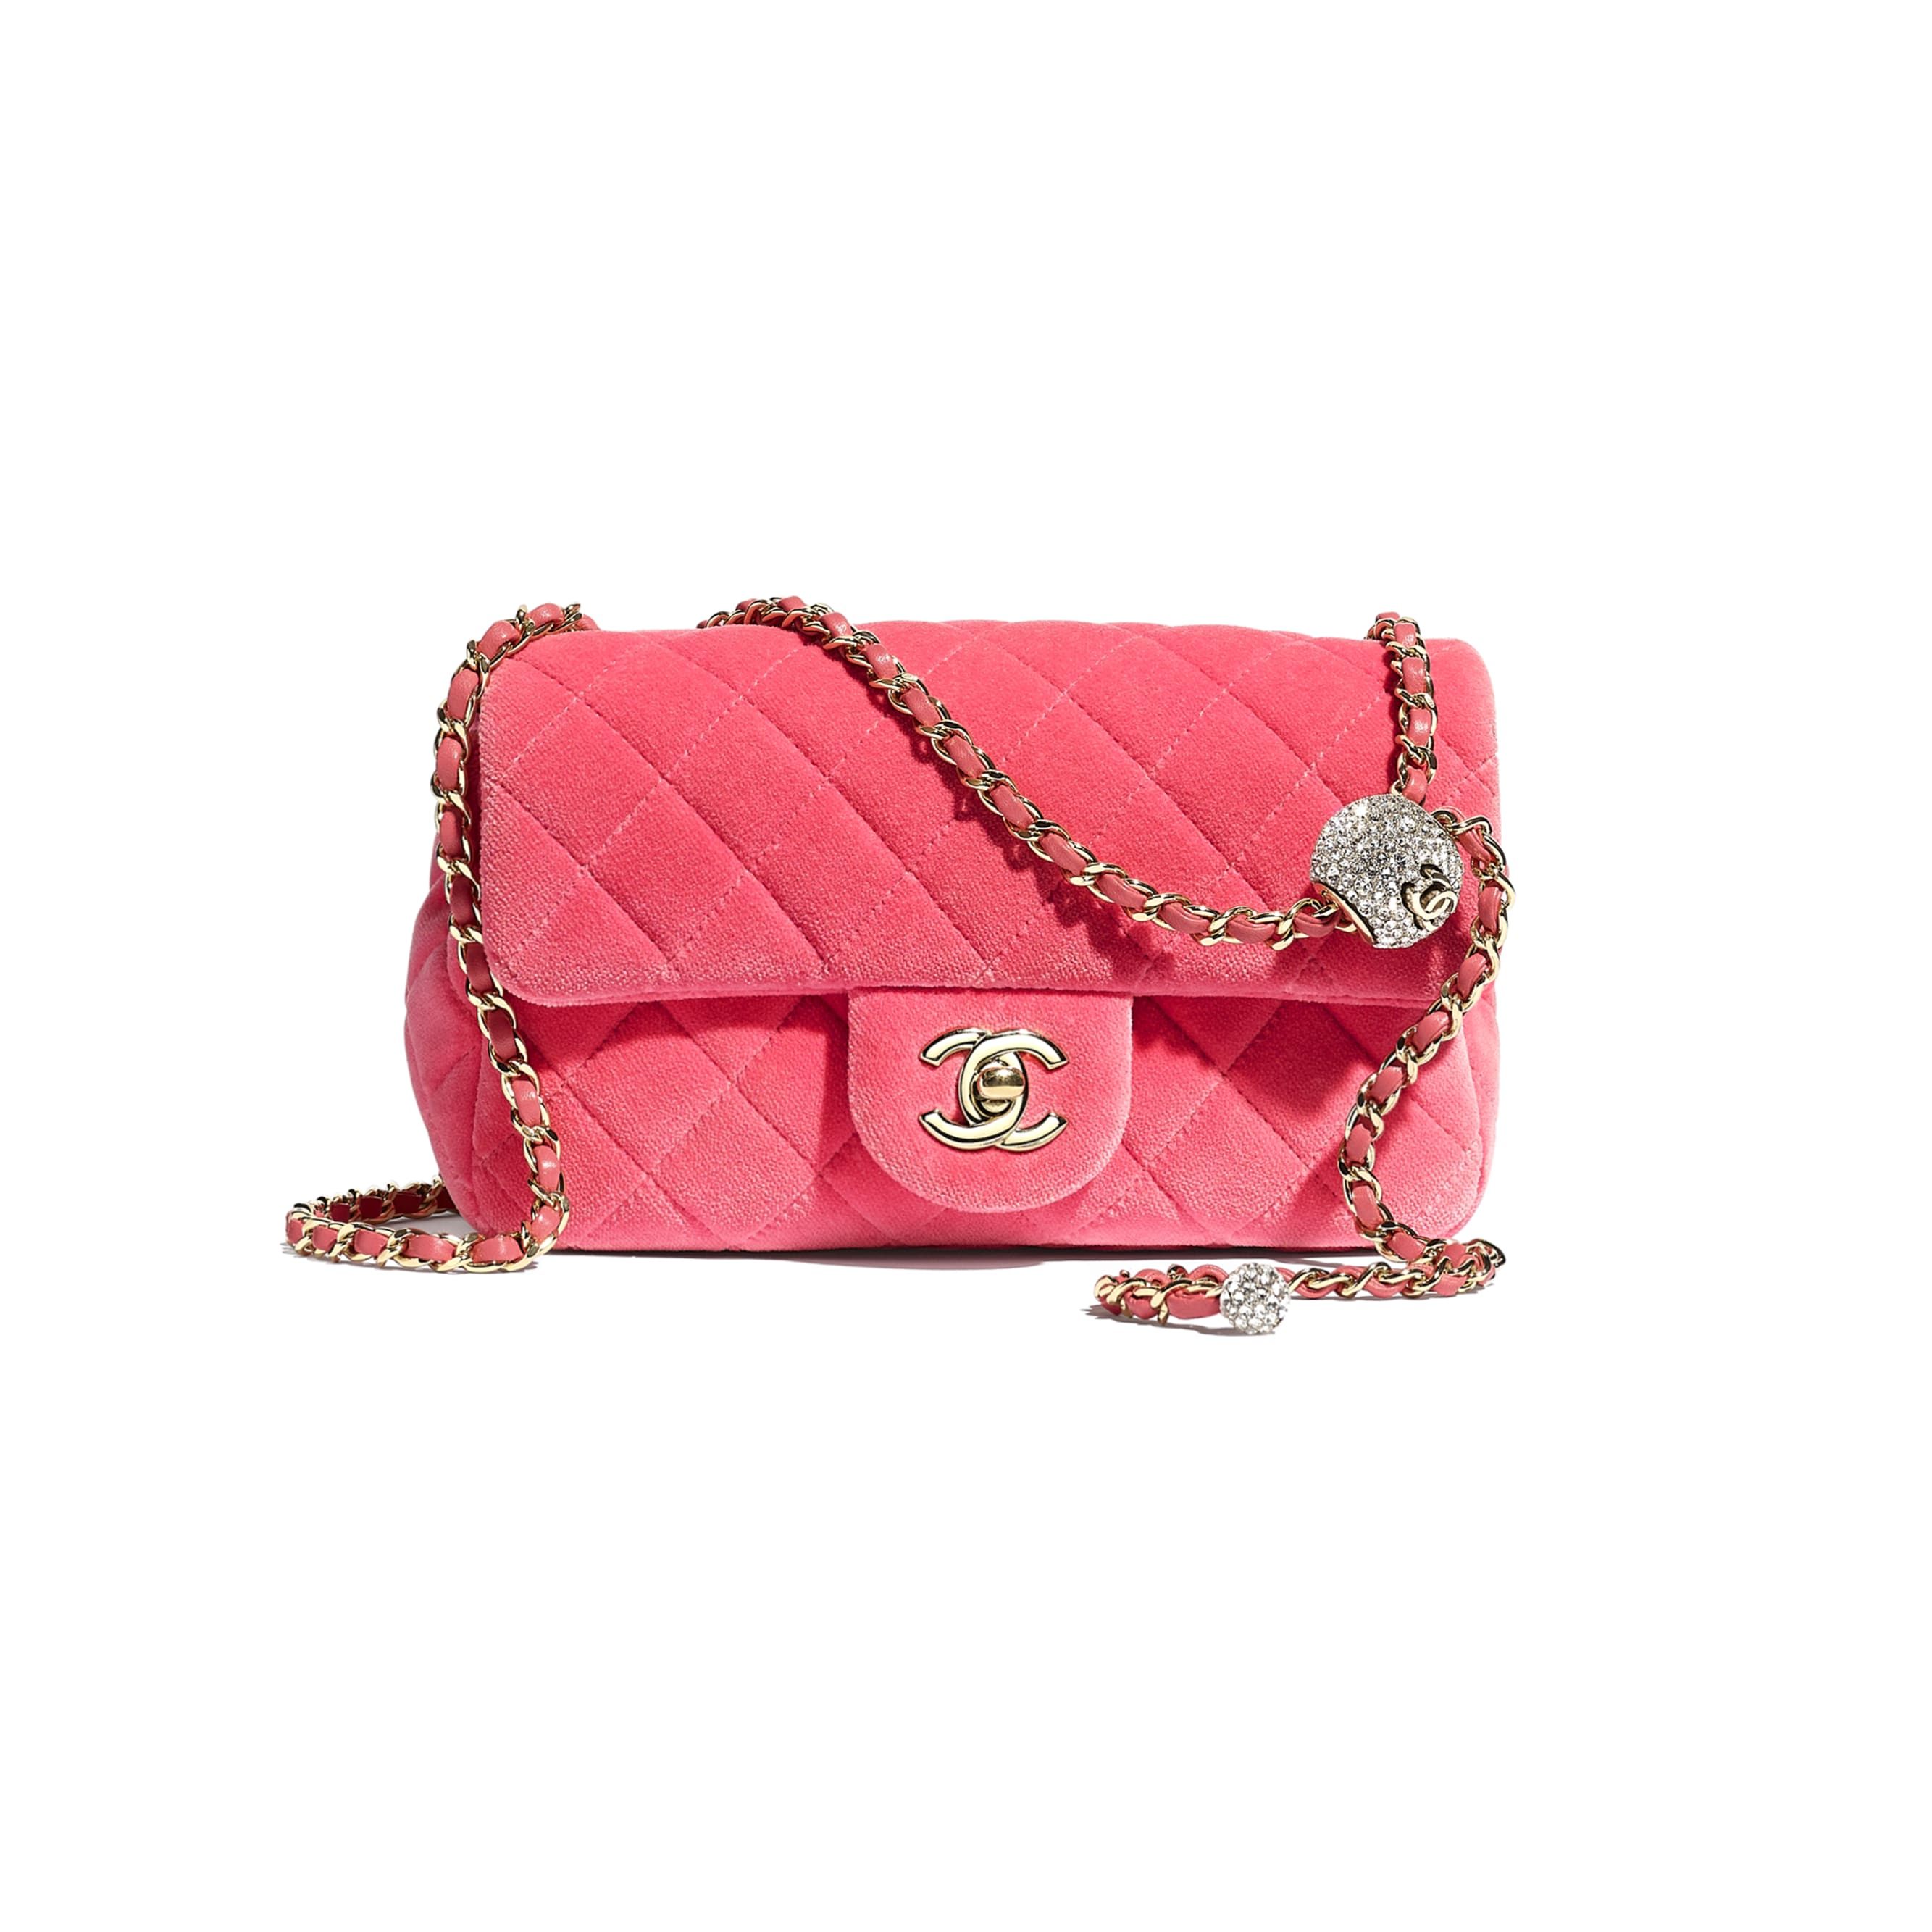 Flap Bag - Coral - Velvet, Strass & Gold-Tone Metal - CHANEL - Default view - see standard sized version